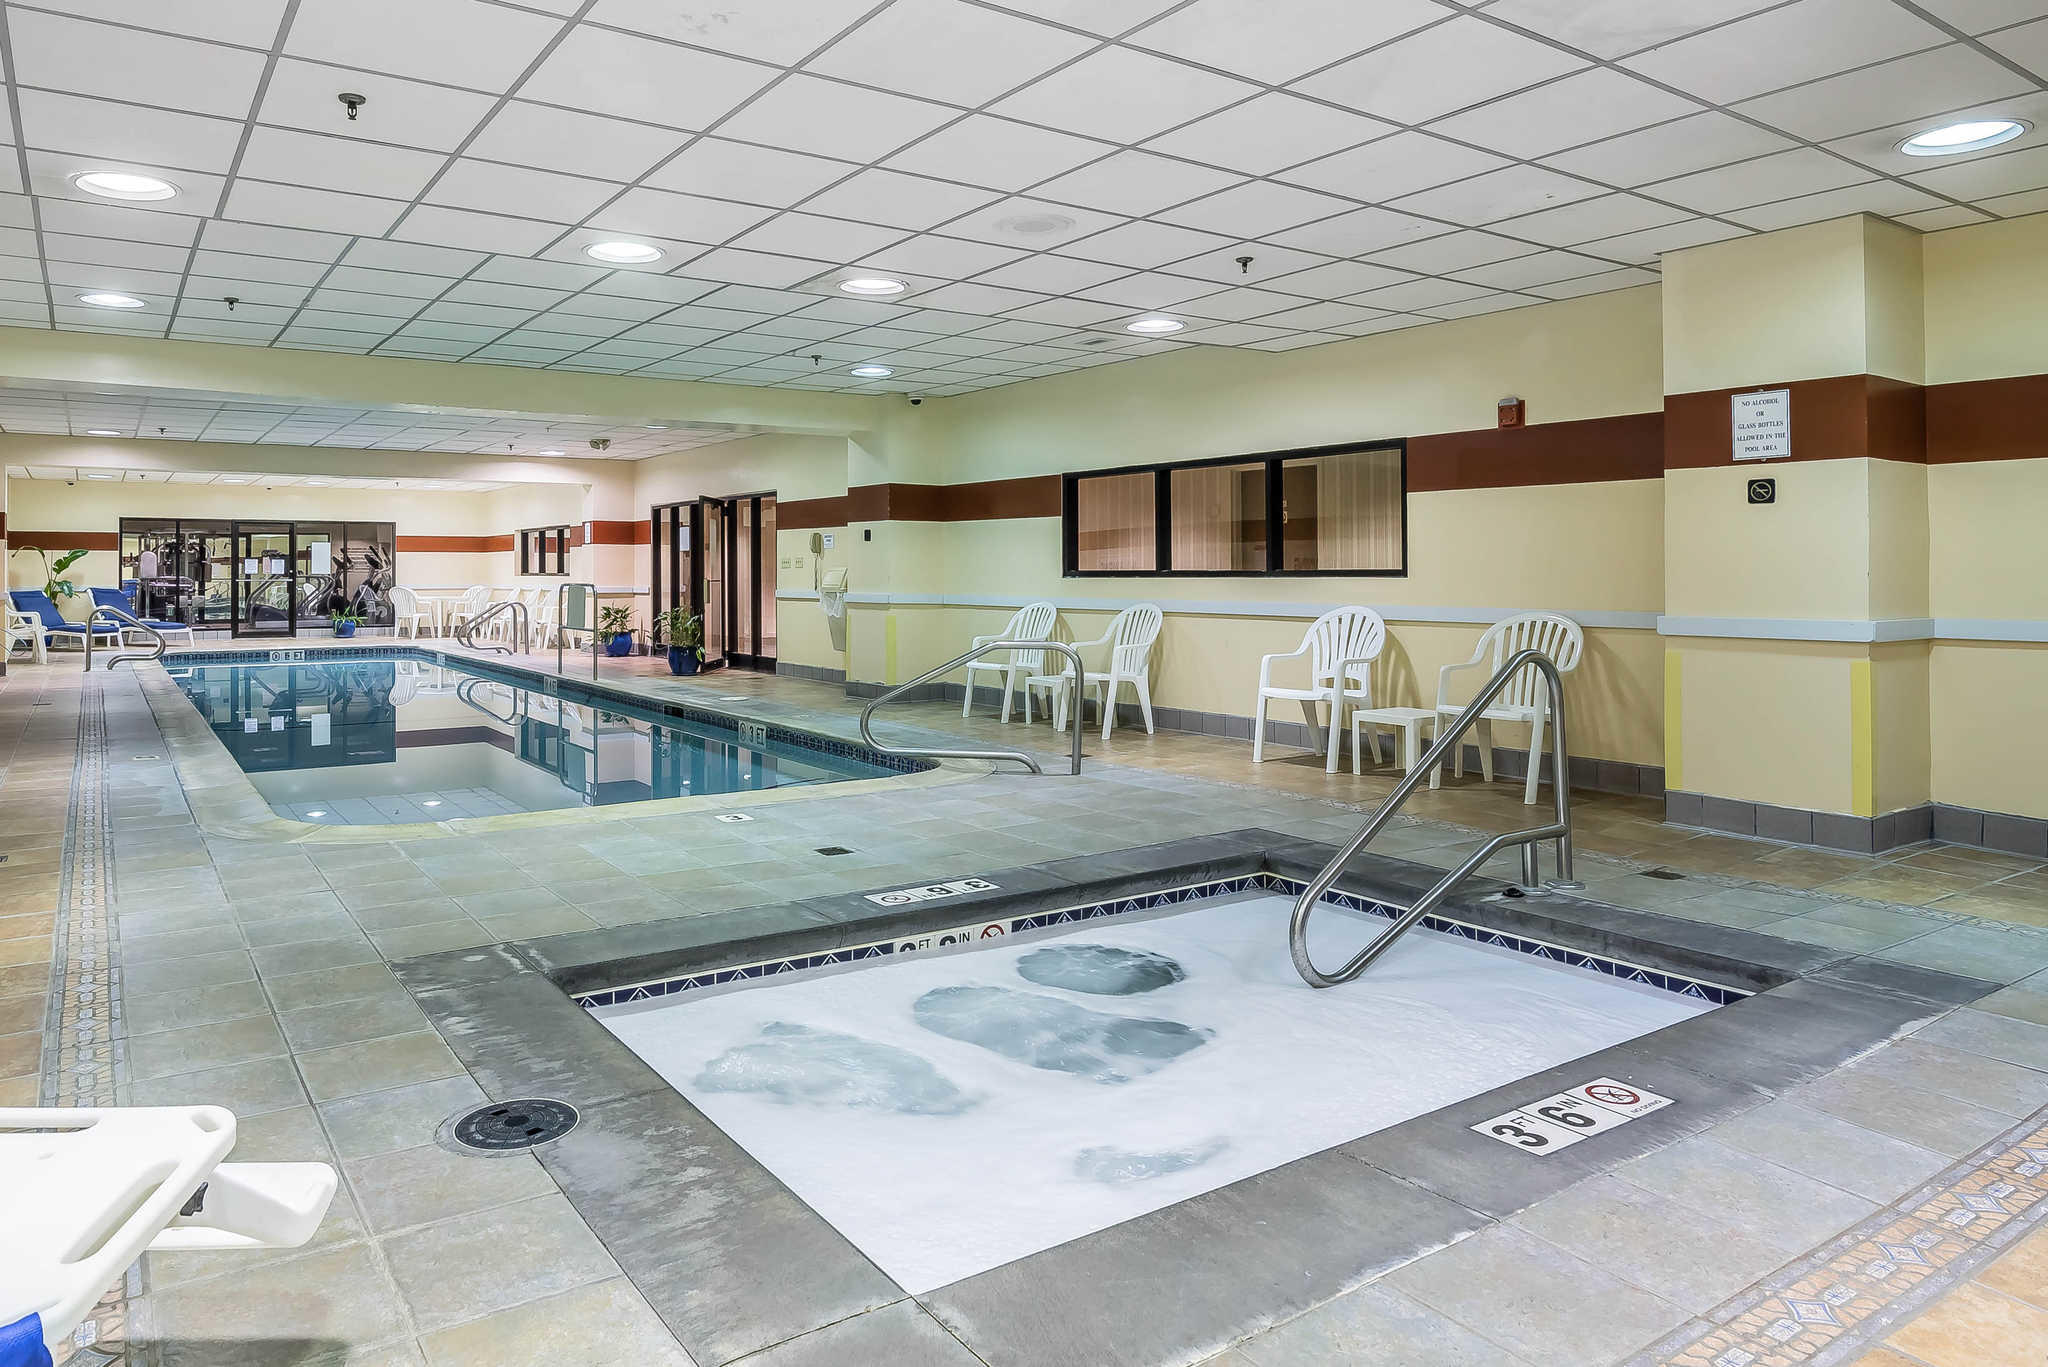 Quality inn in portsmouth nh 03801 for Hotels in portsmouth with swimming pool